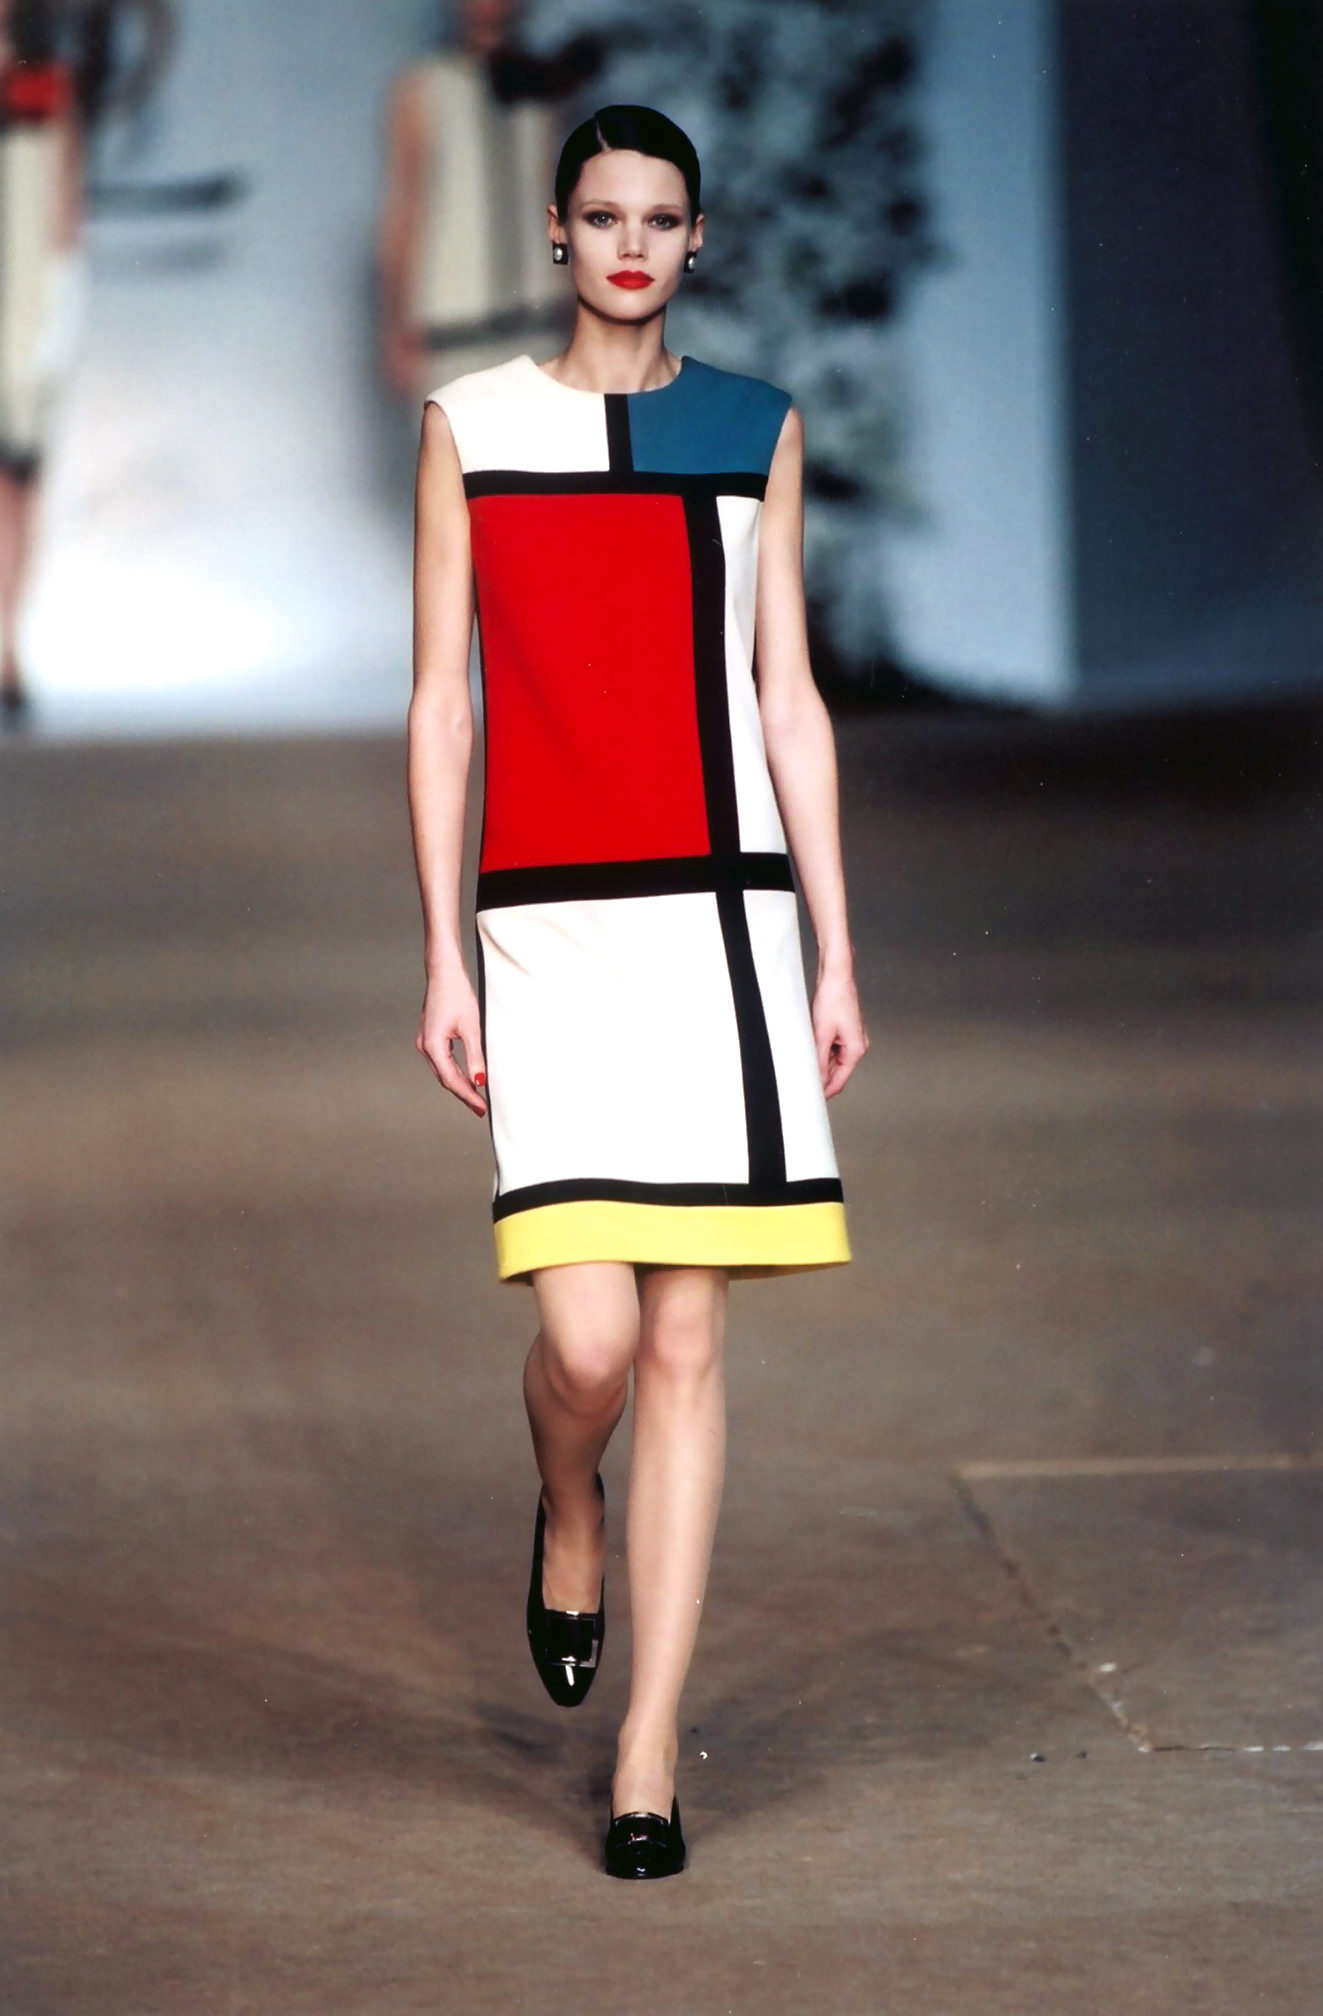 Yves Saint-Laurent, La robe Mondrian